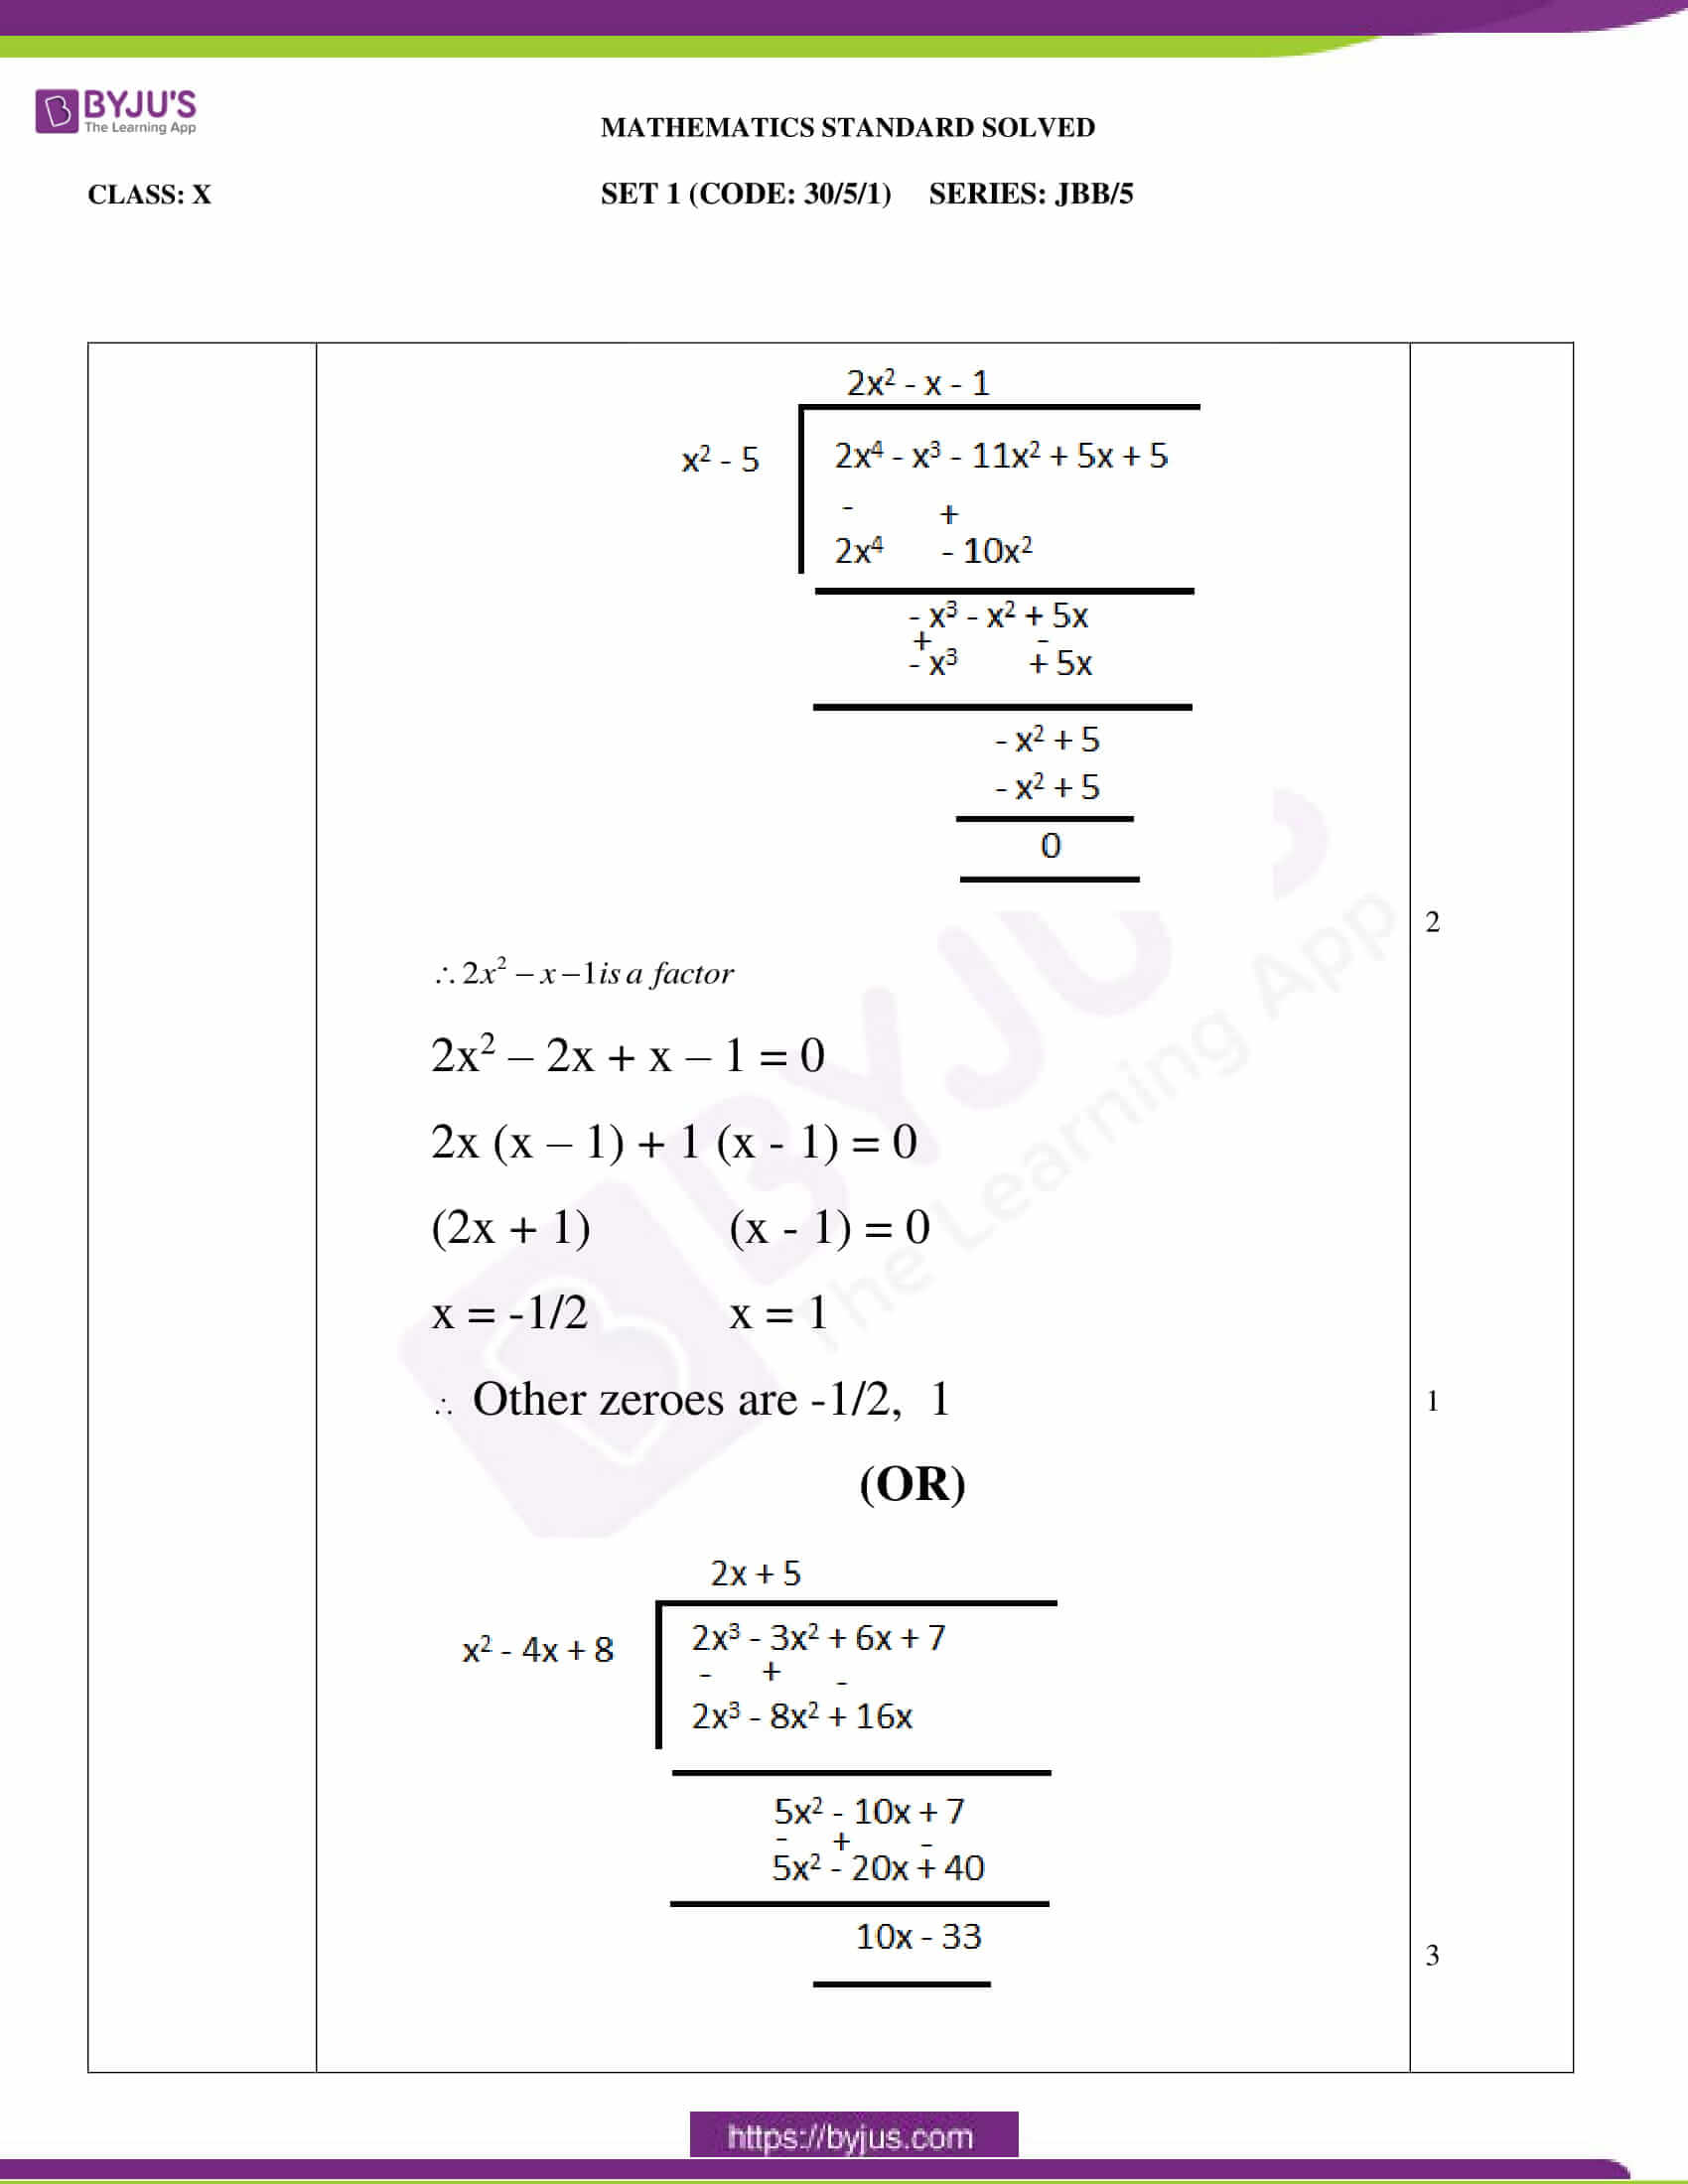 cbse class 10 maths standard question paper solution 2020 set 1 17